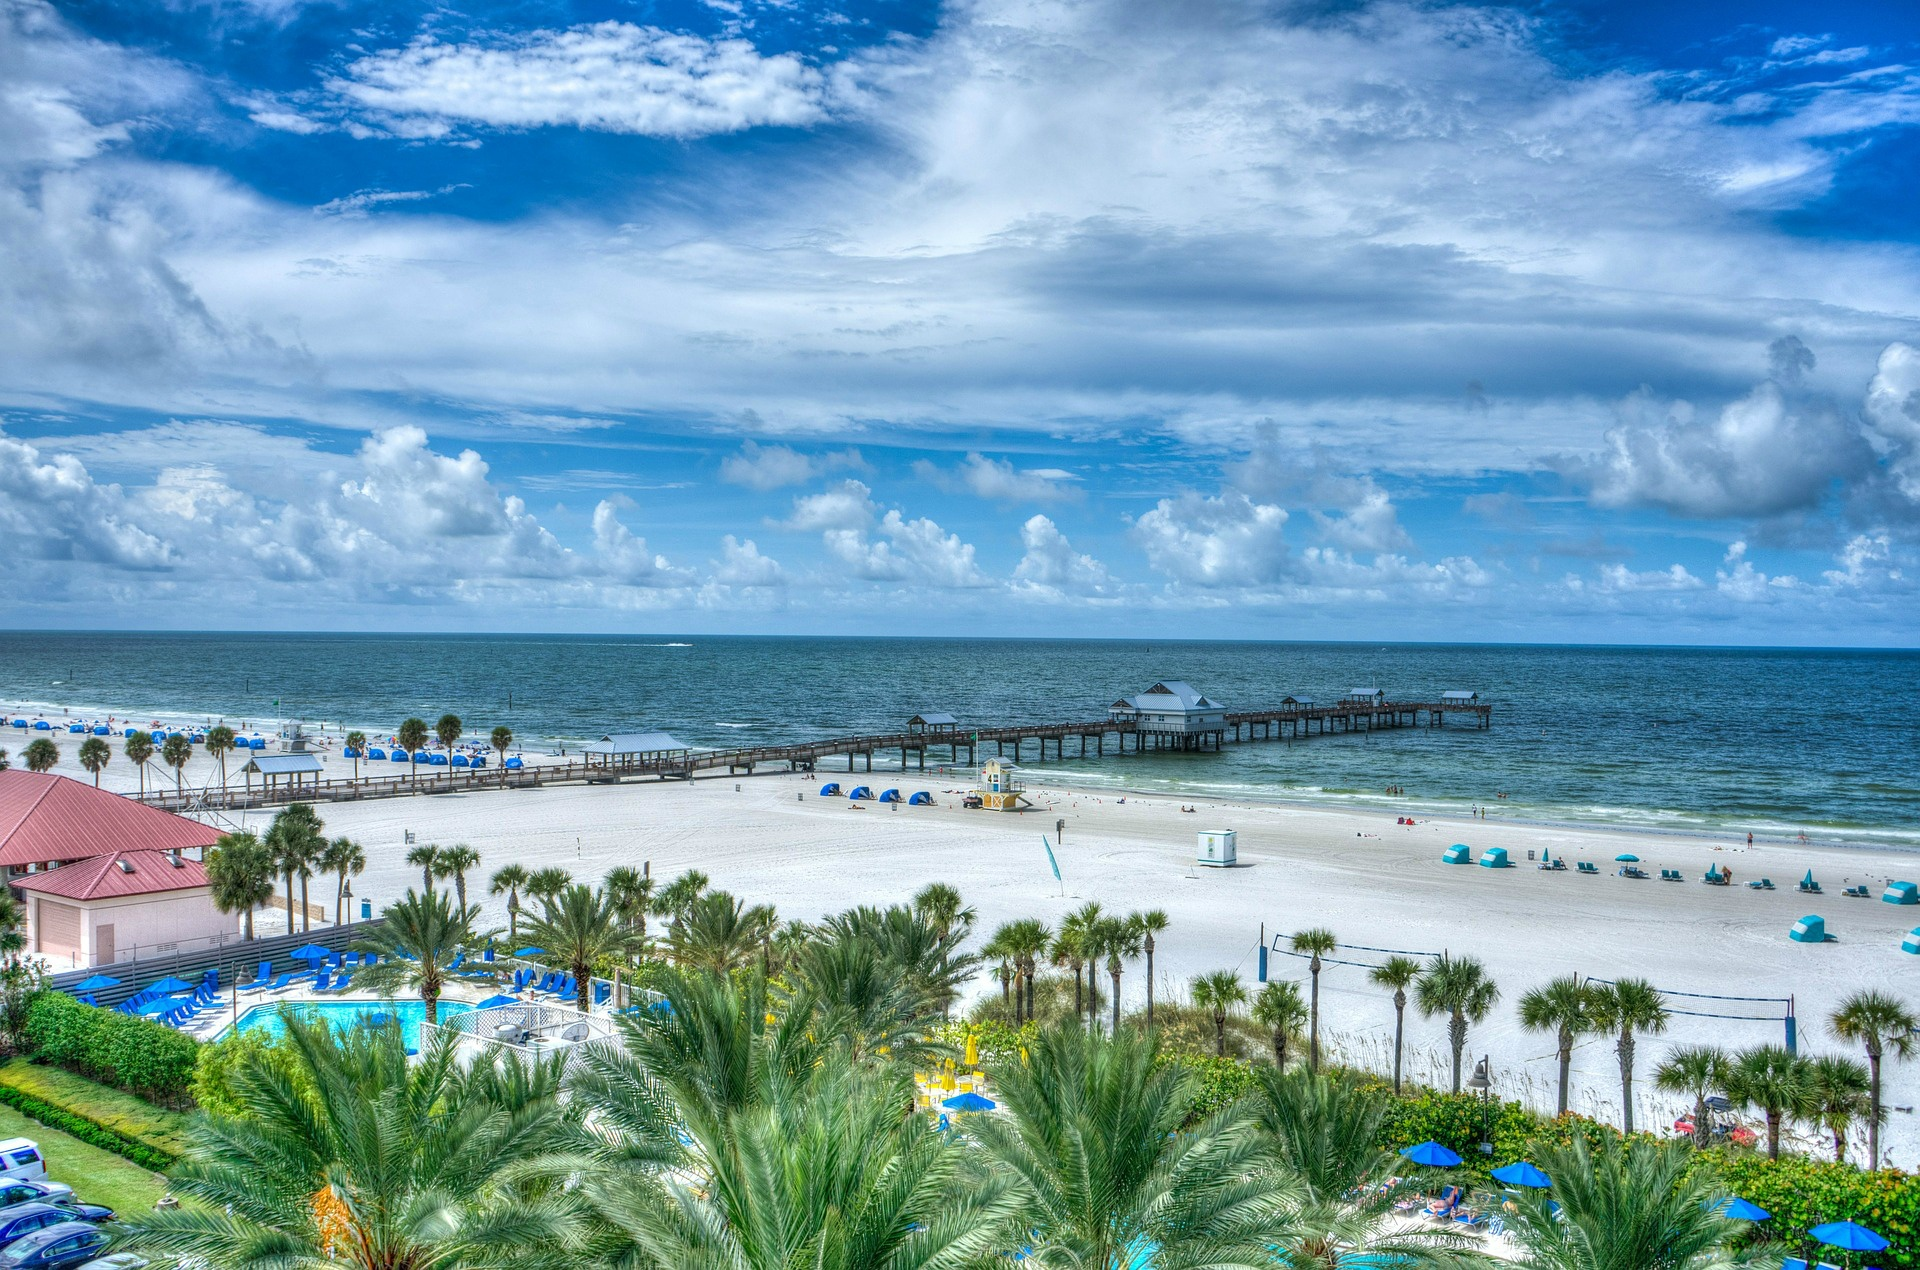 Top Things To Do In Clearwater Florida